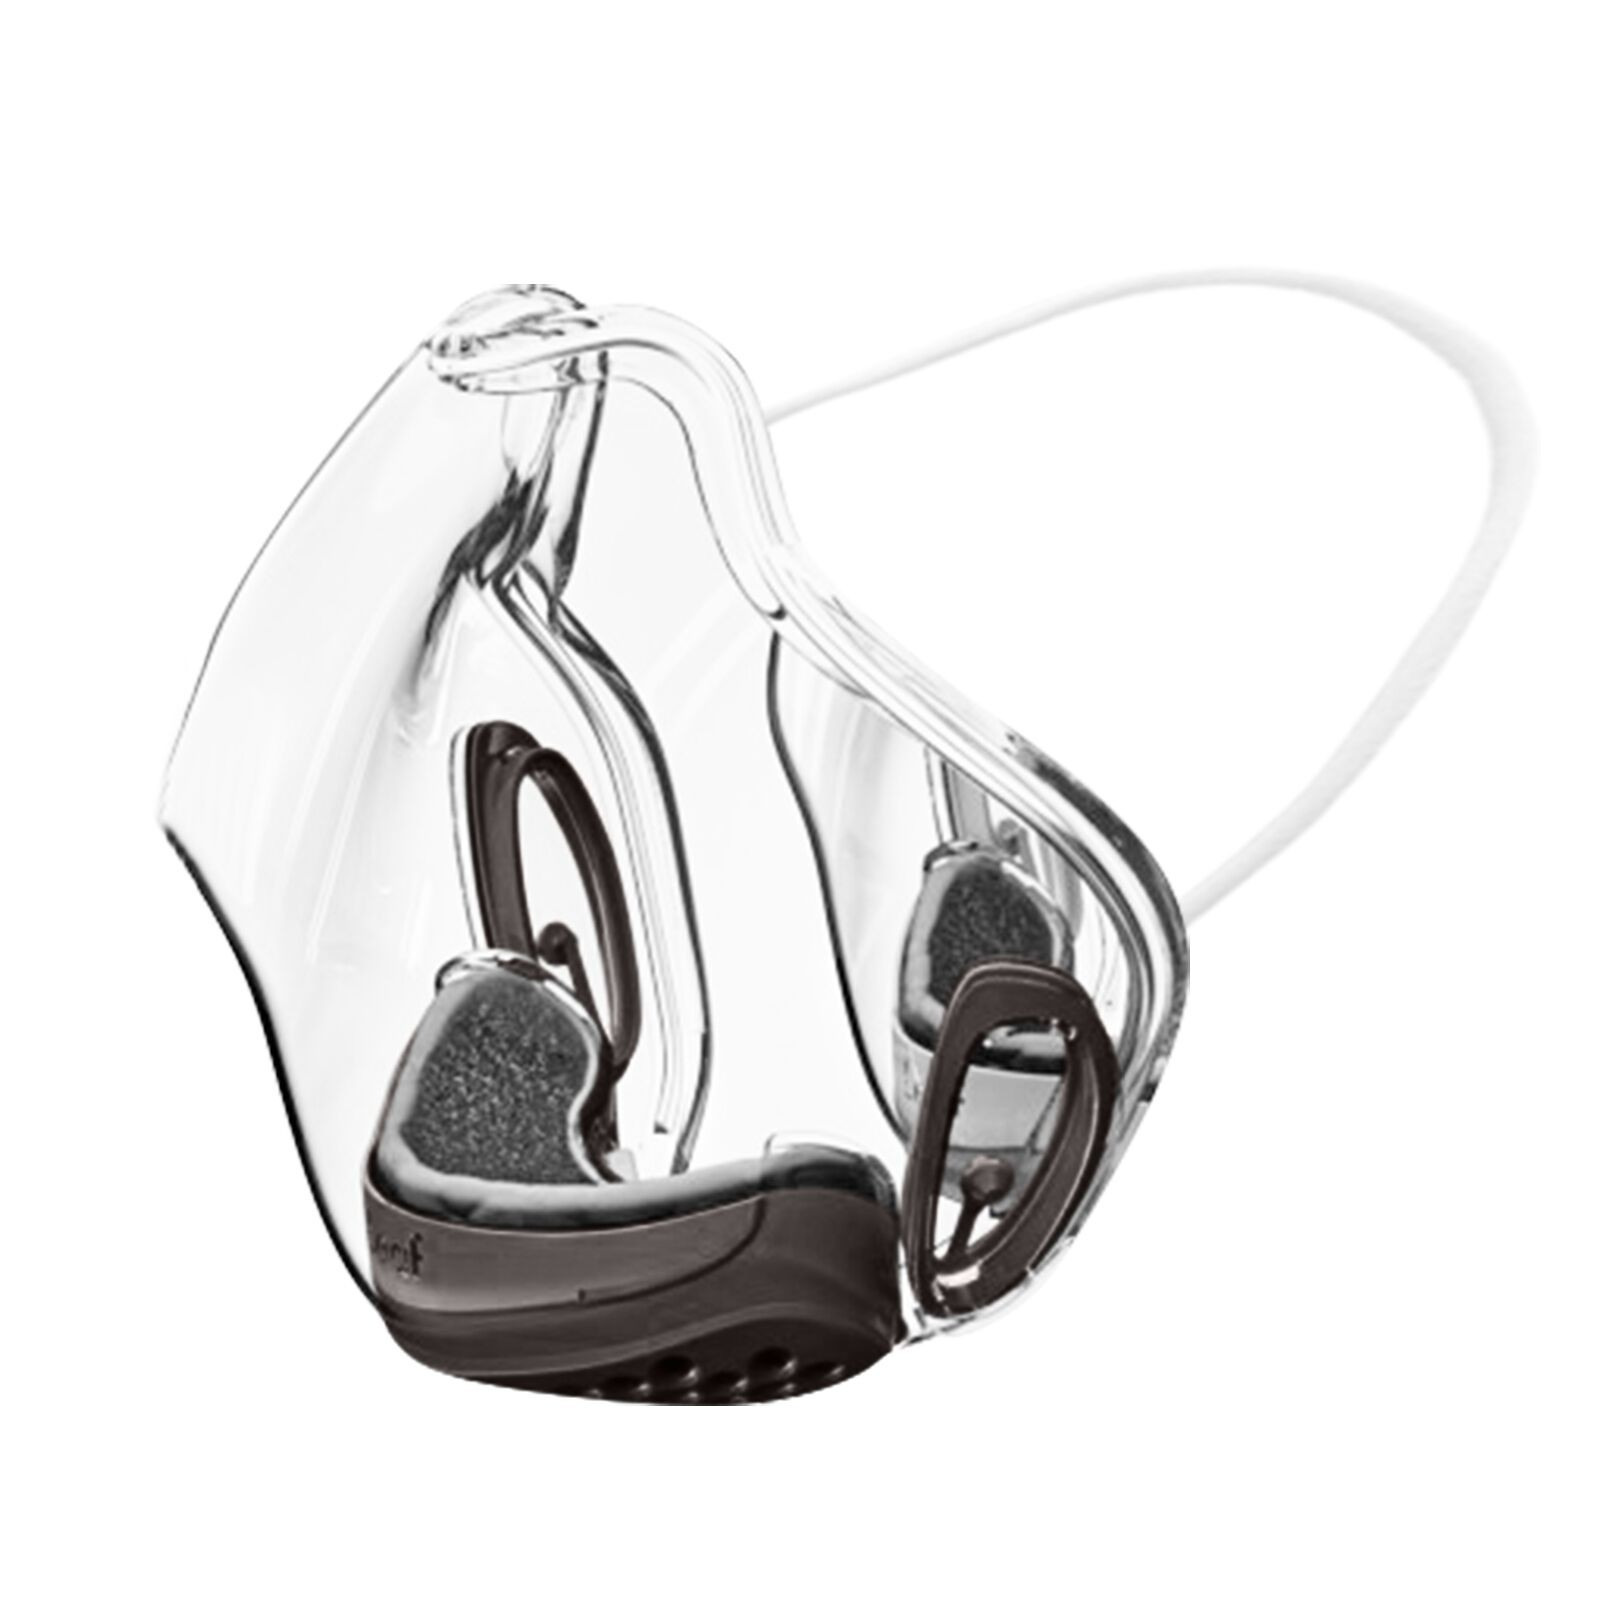 🔥New Breathability, Safety and Practicality Transparent Mask 6